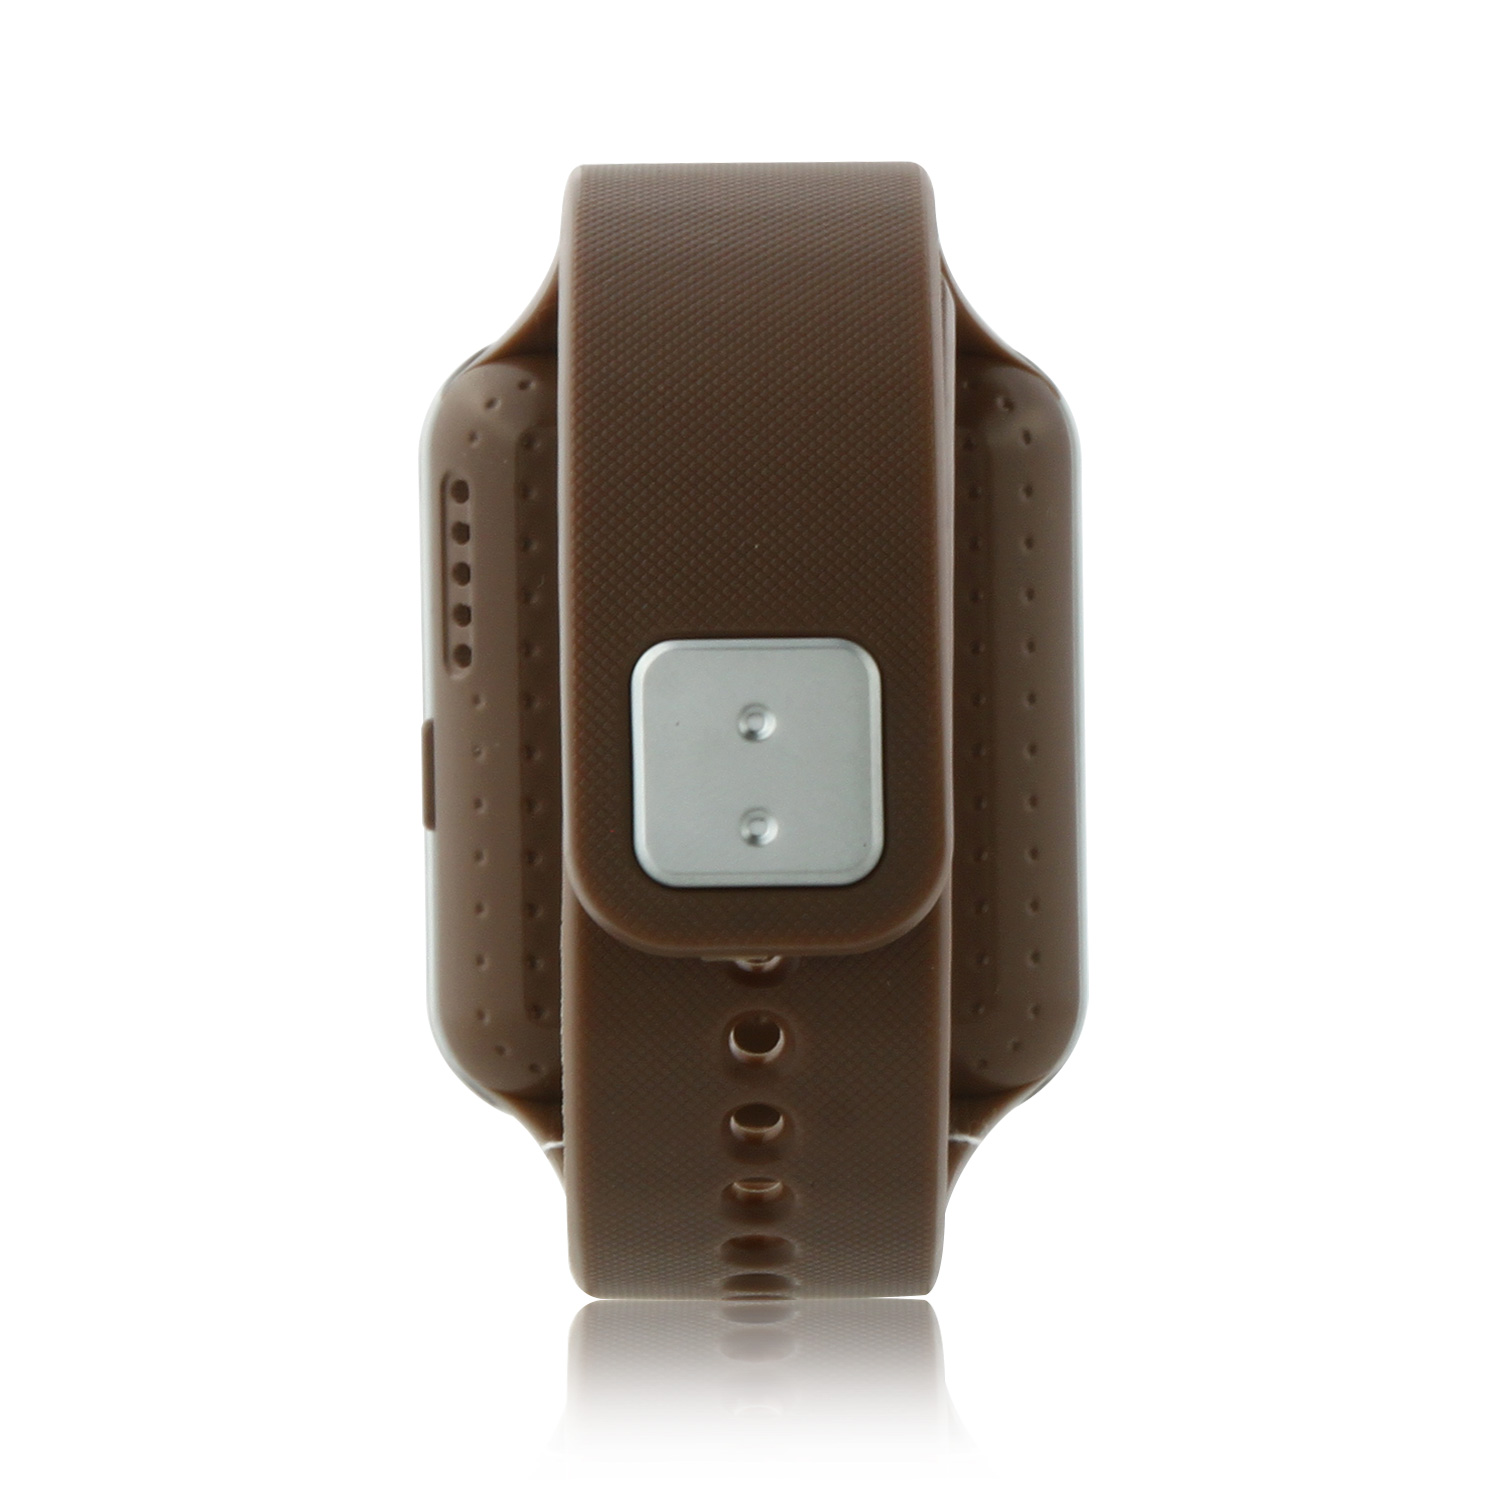 "MIFone W15 2.5D Sapphire Glass Smart Bluetooth Watch 1.5"" Screen TPSiV Safe Strap Brown"